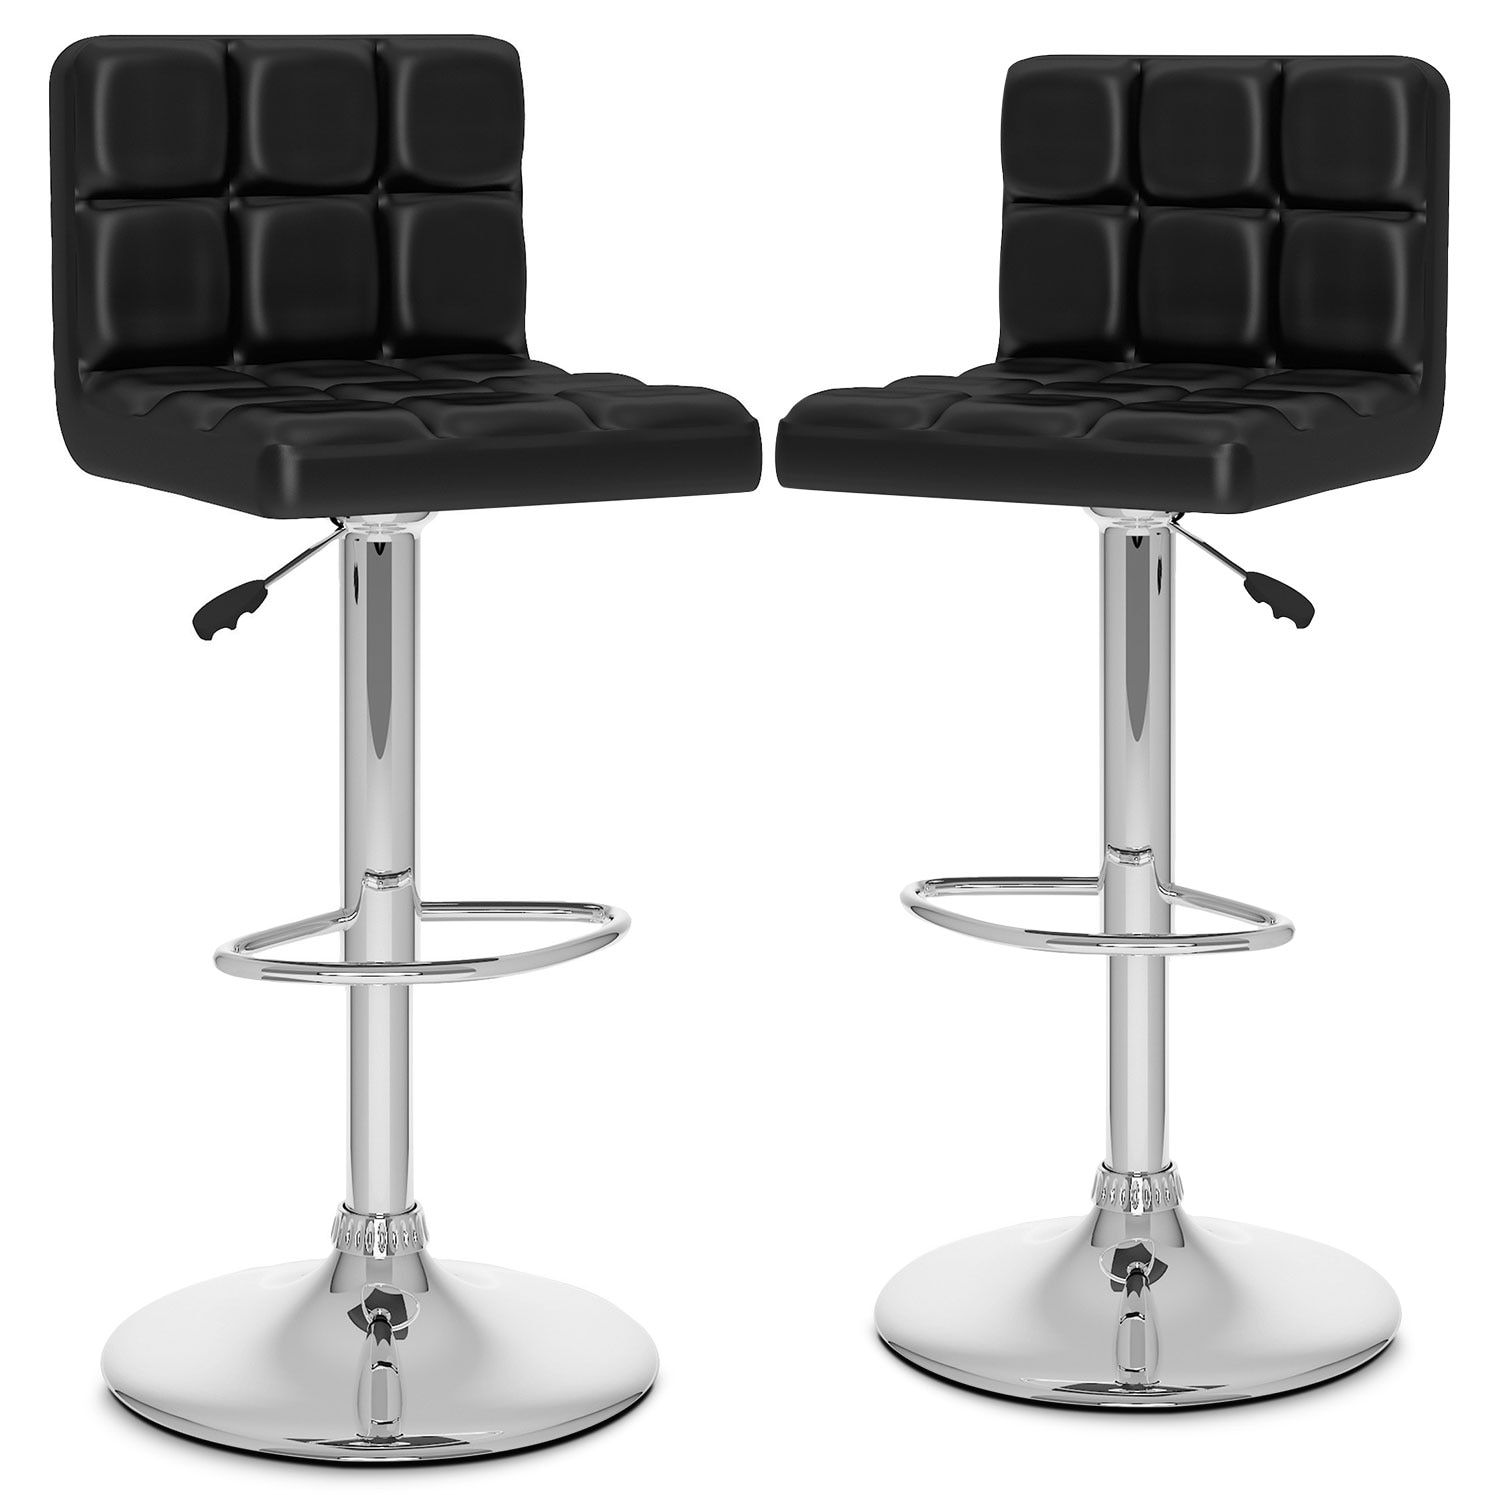 CorLiving High-Back Adjustable Bar Stool, Set of 2 – Black